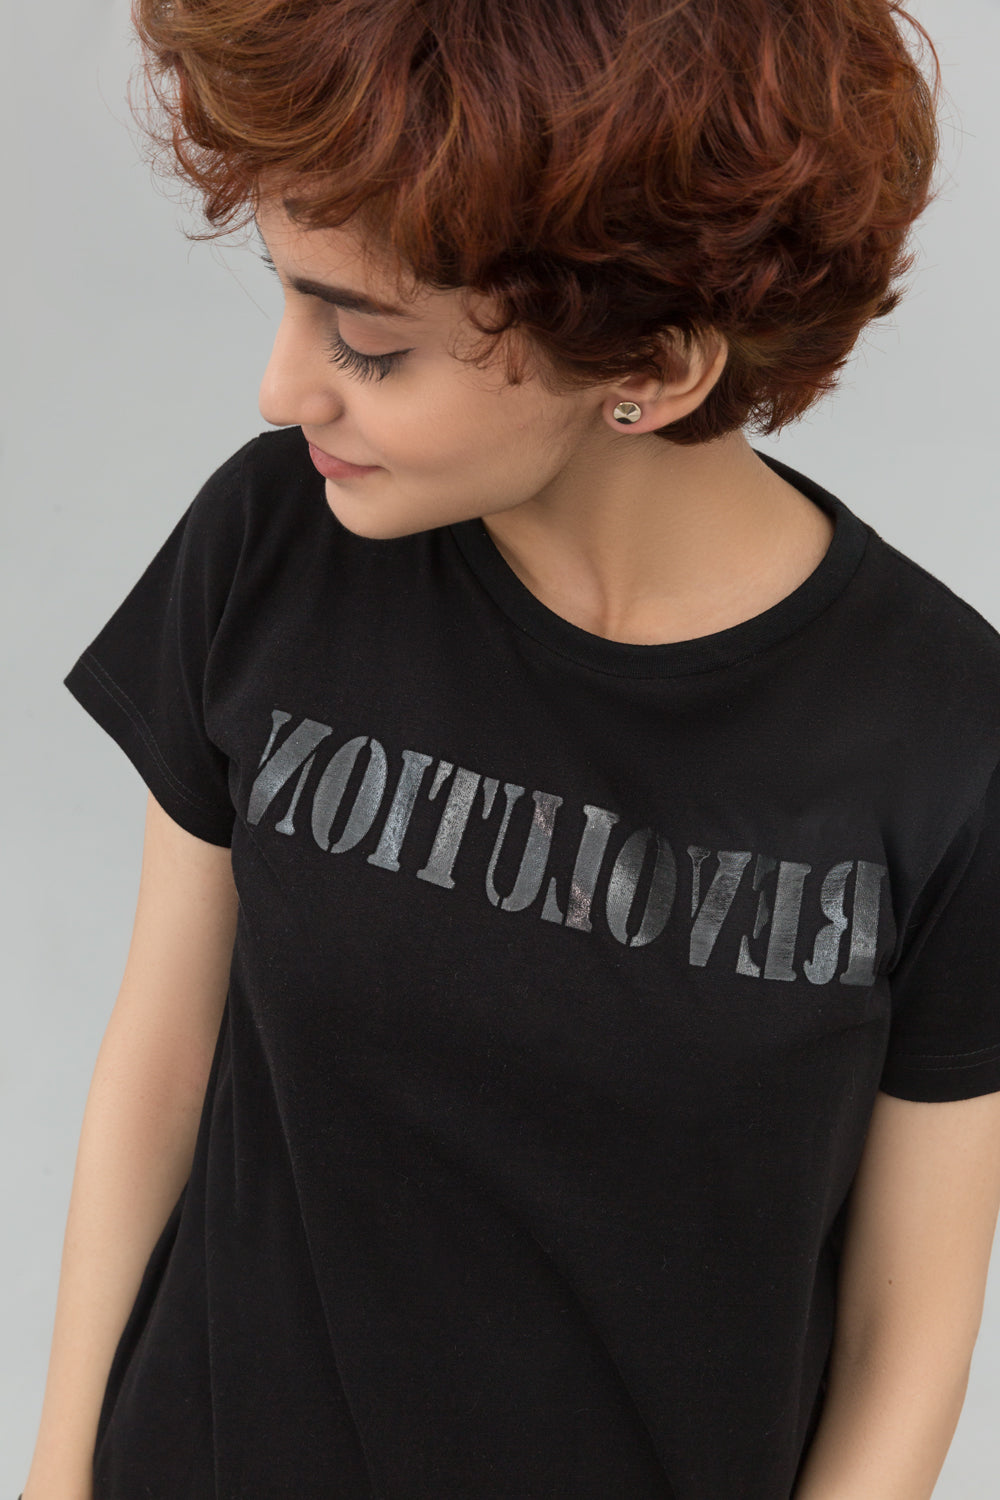 Revolution Black Statement T-shirt In Print - yesonline.pk